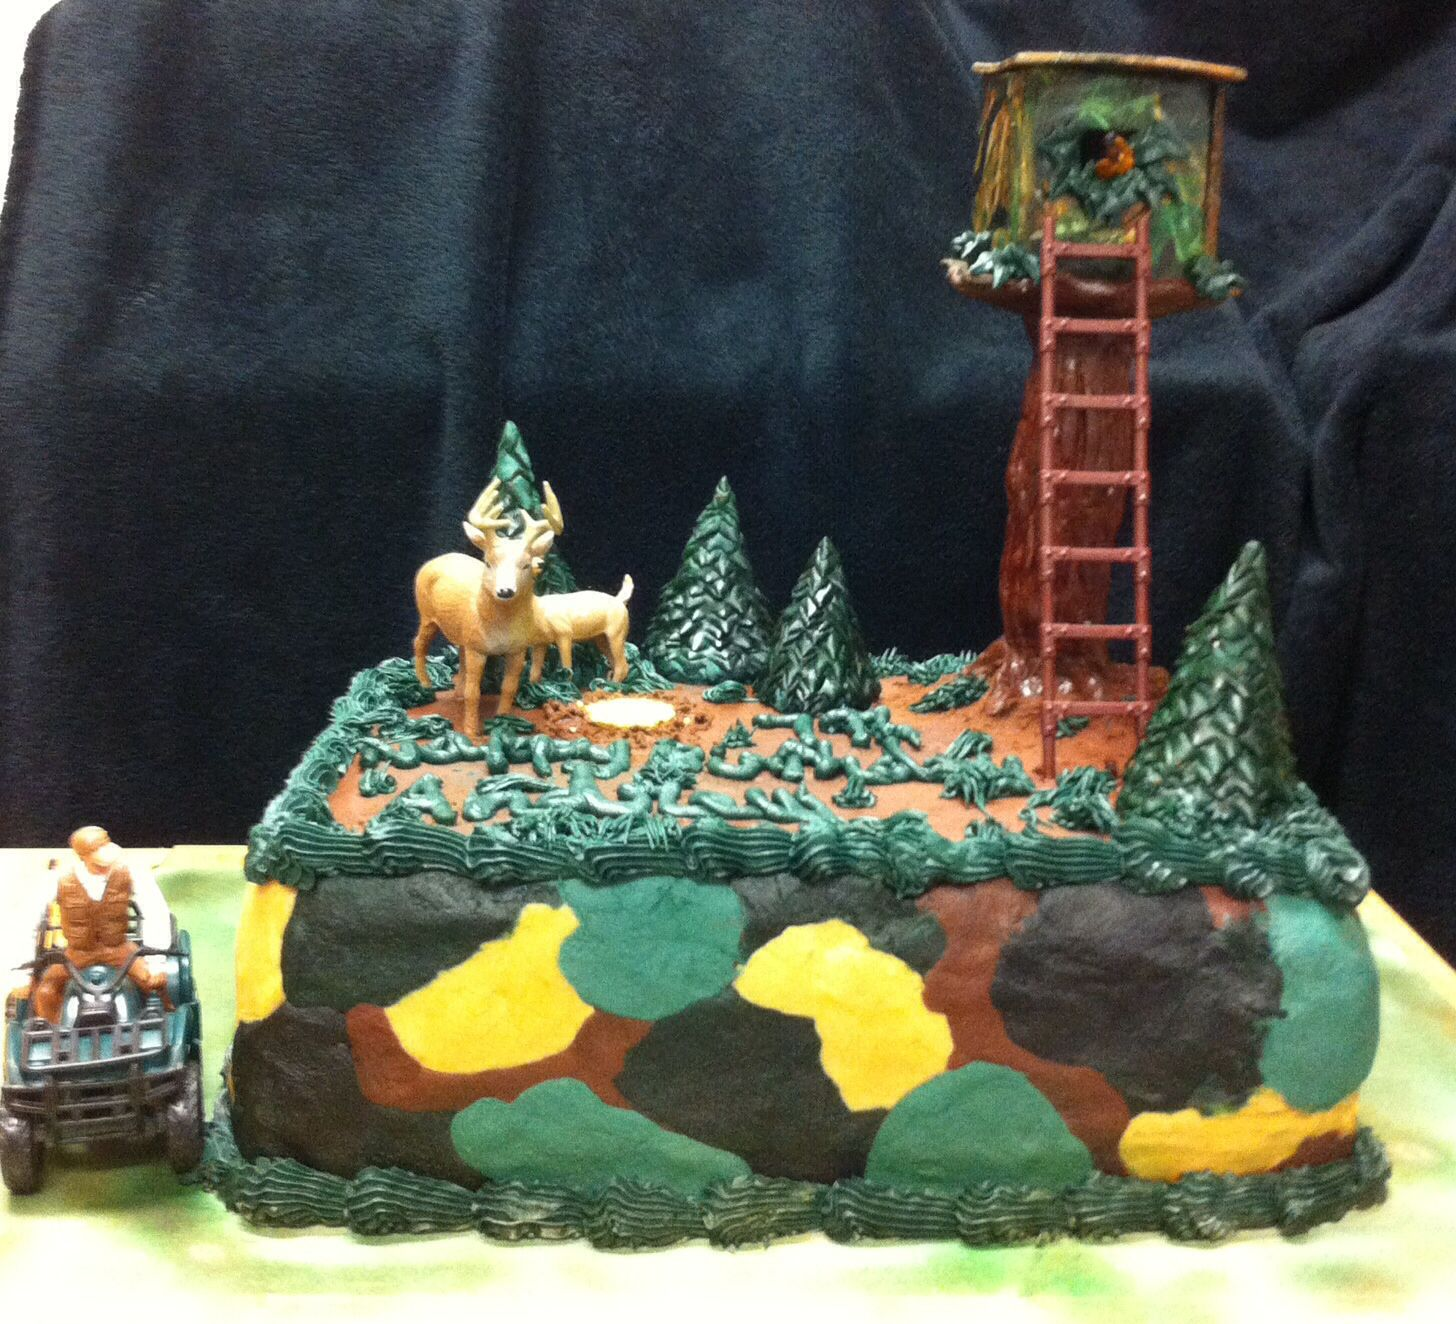 Hunting theme with deer stand Cake Nanna Pinterest Hunting